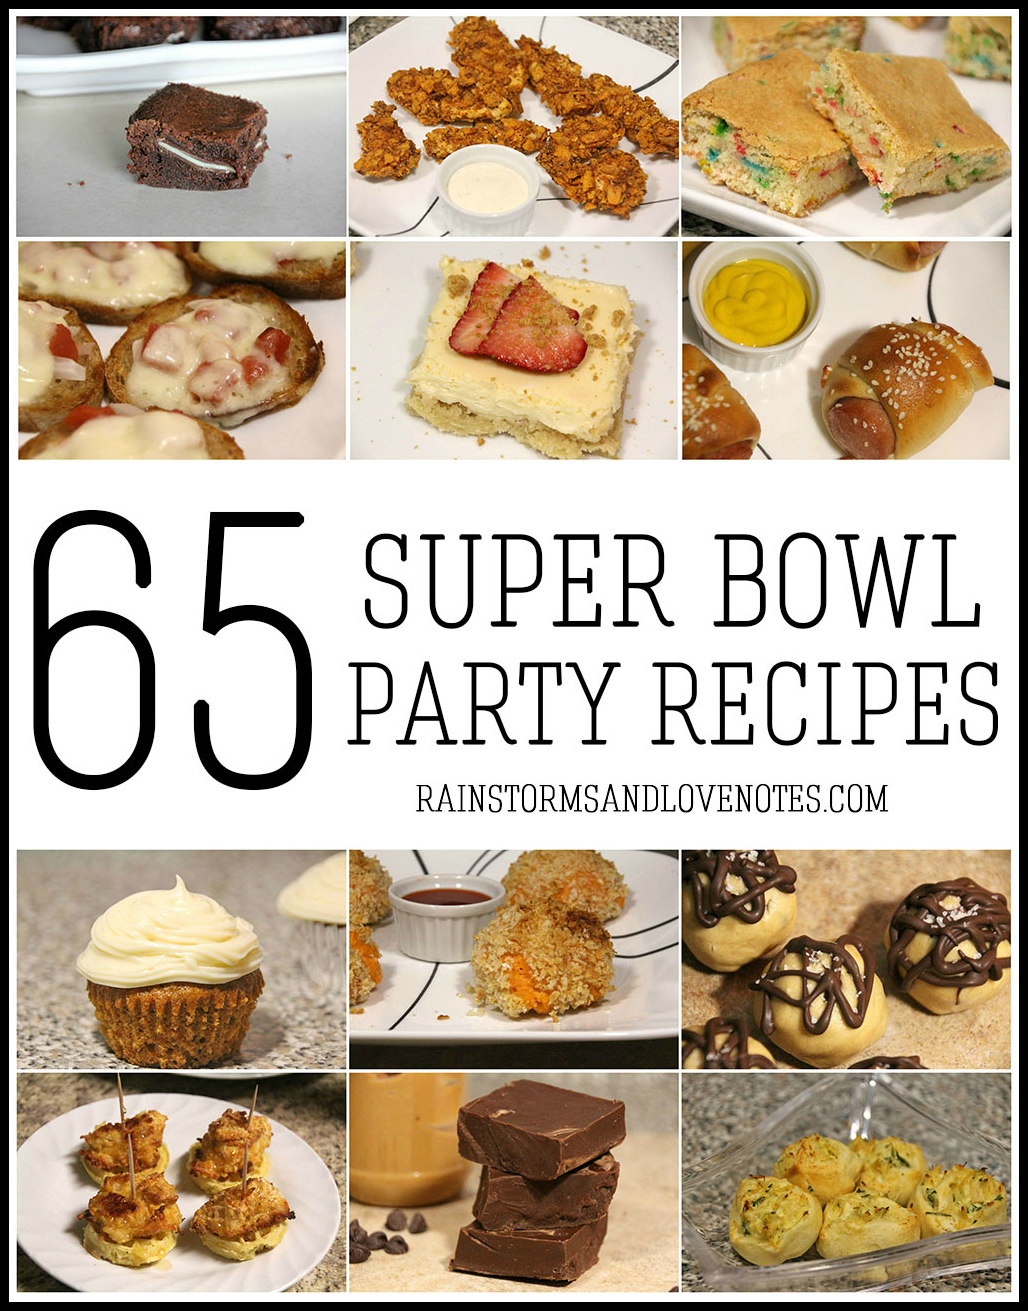 65-Super-Bowl-Party-Recipes